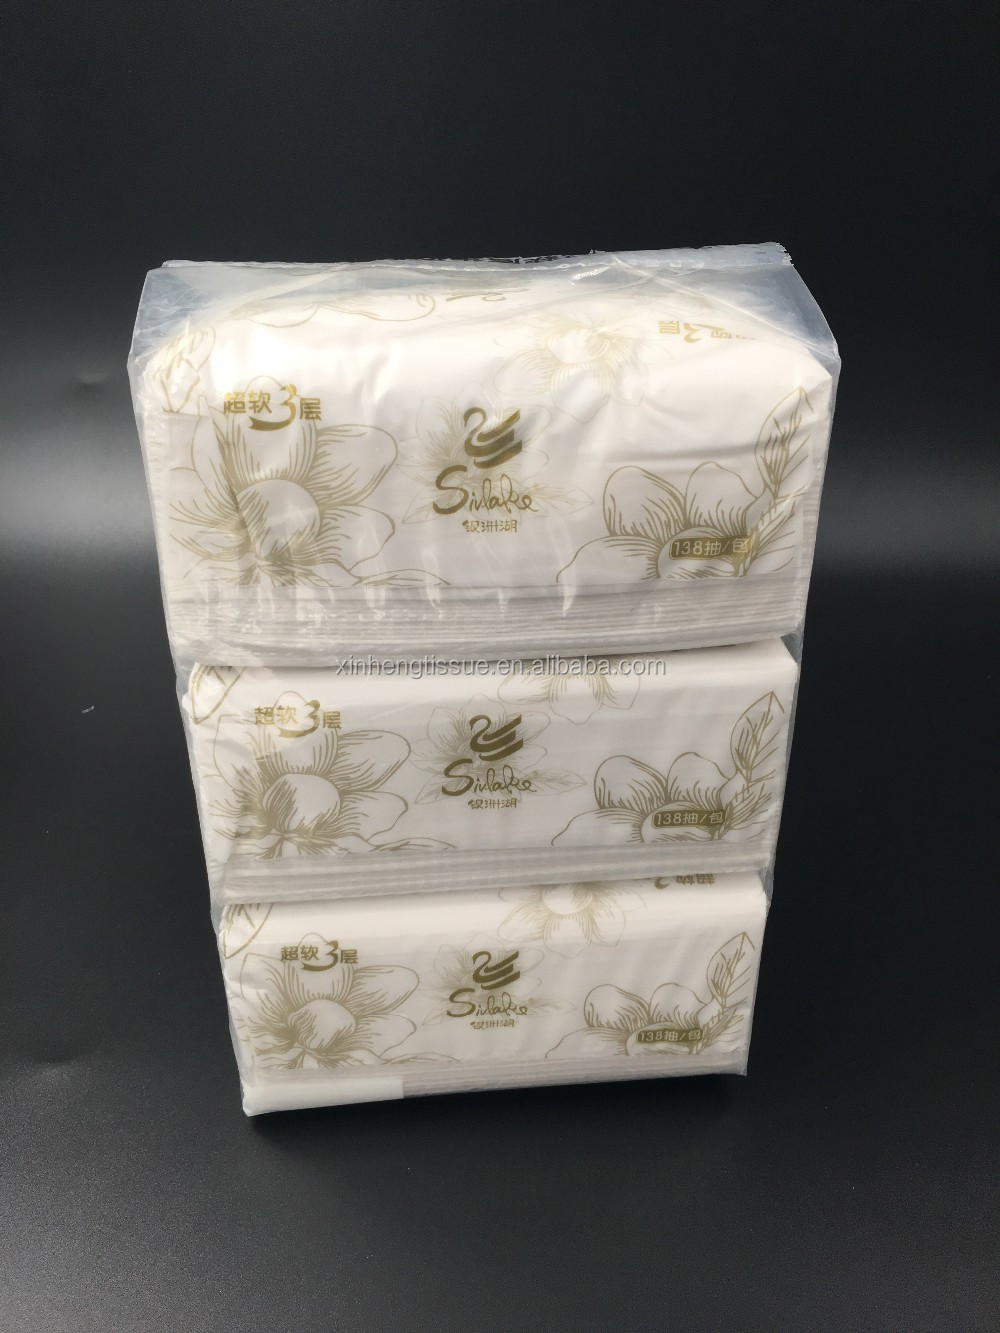 Facial tissue manufacturer